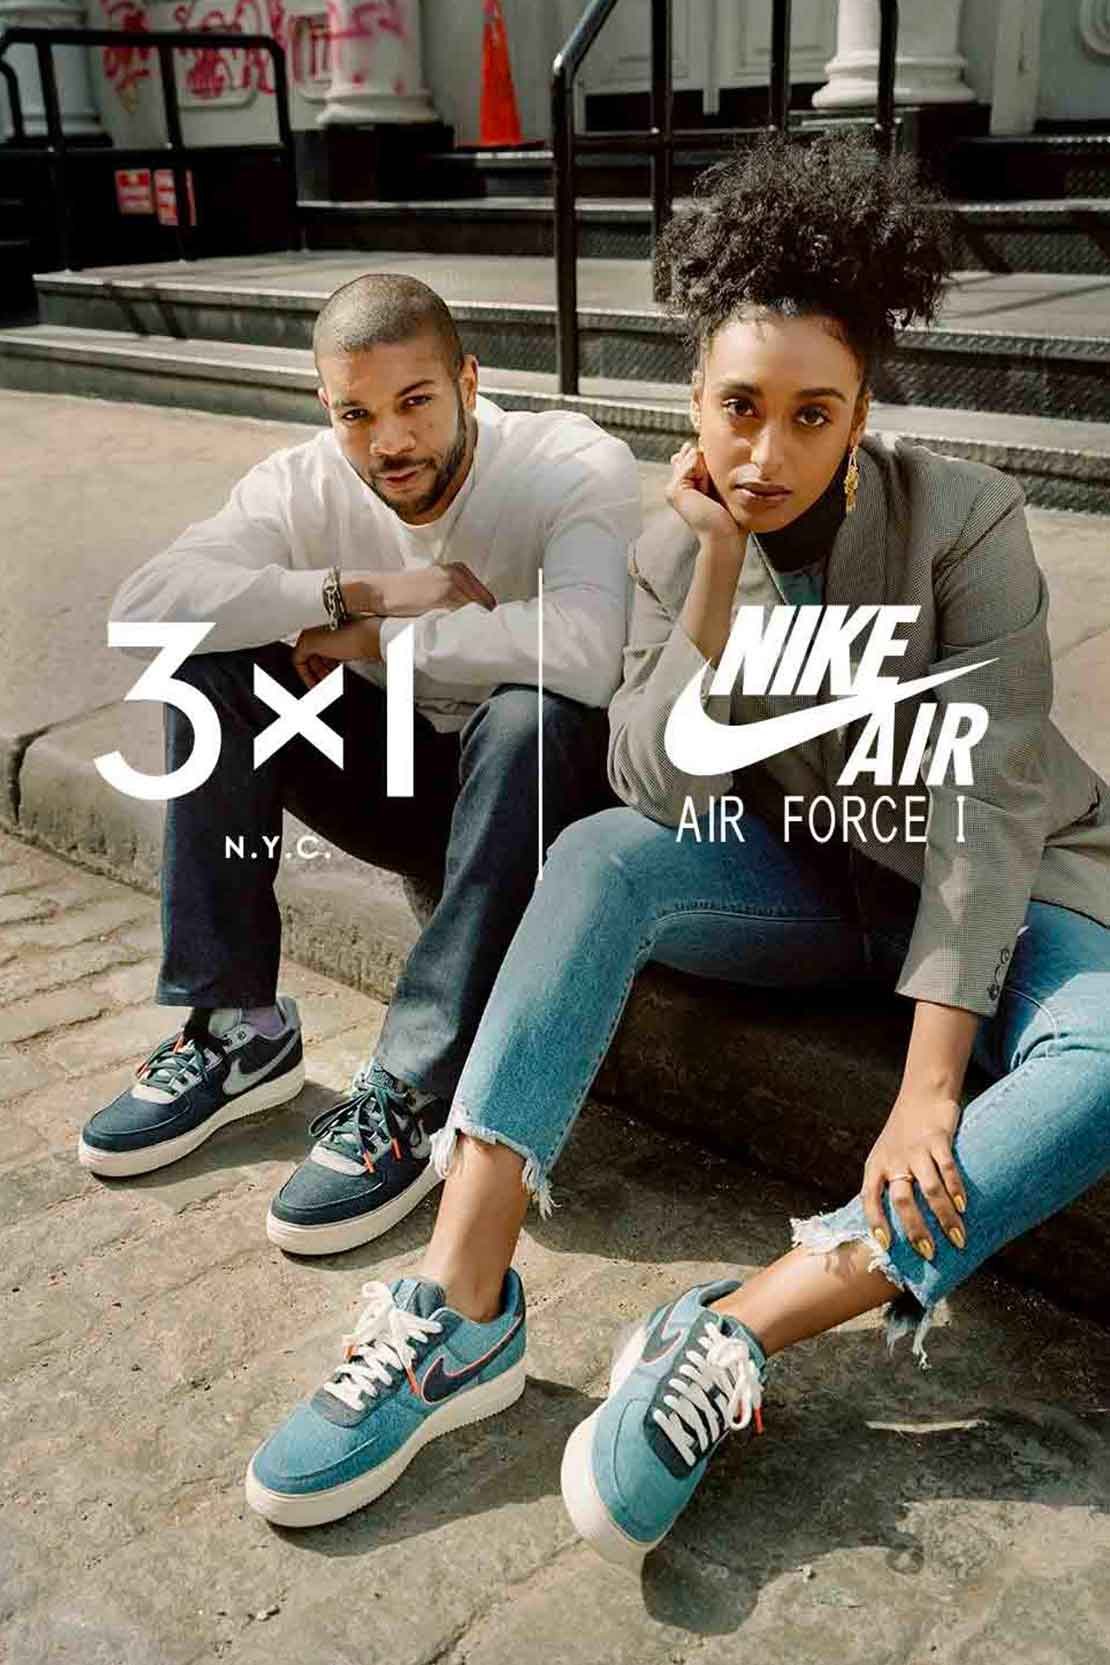 3x1 - Nike Air Force 1